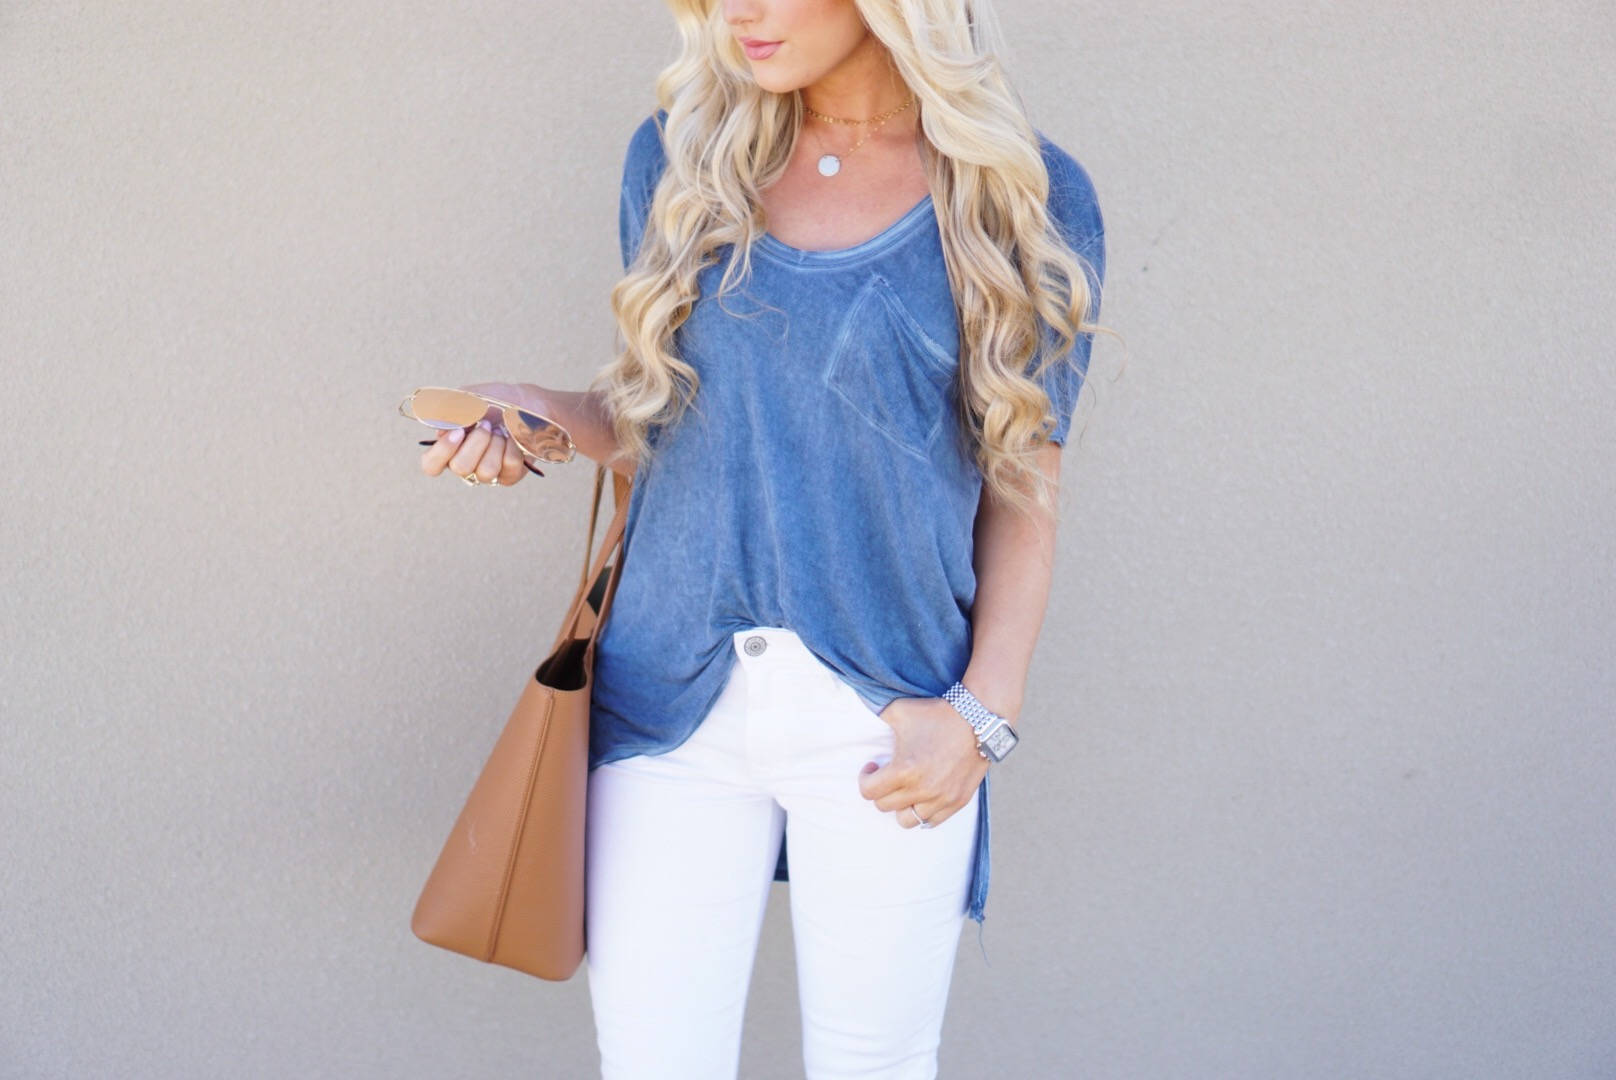 A Touch of Pink Blog Katelyn Jones White Express Jeans Free People Shirt